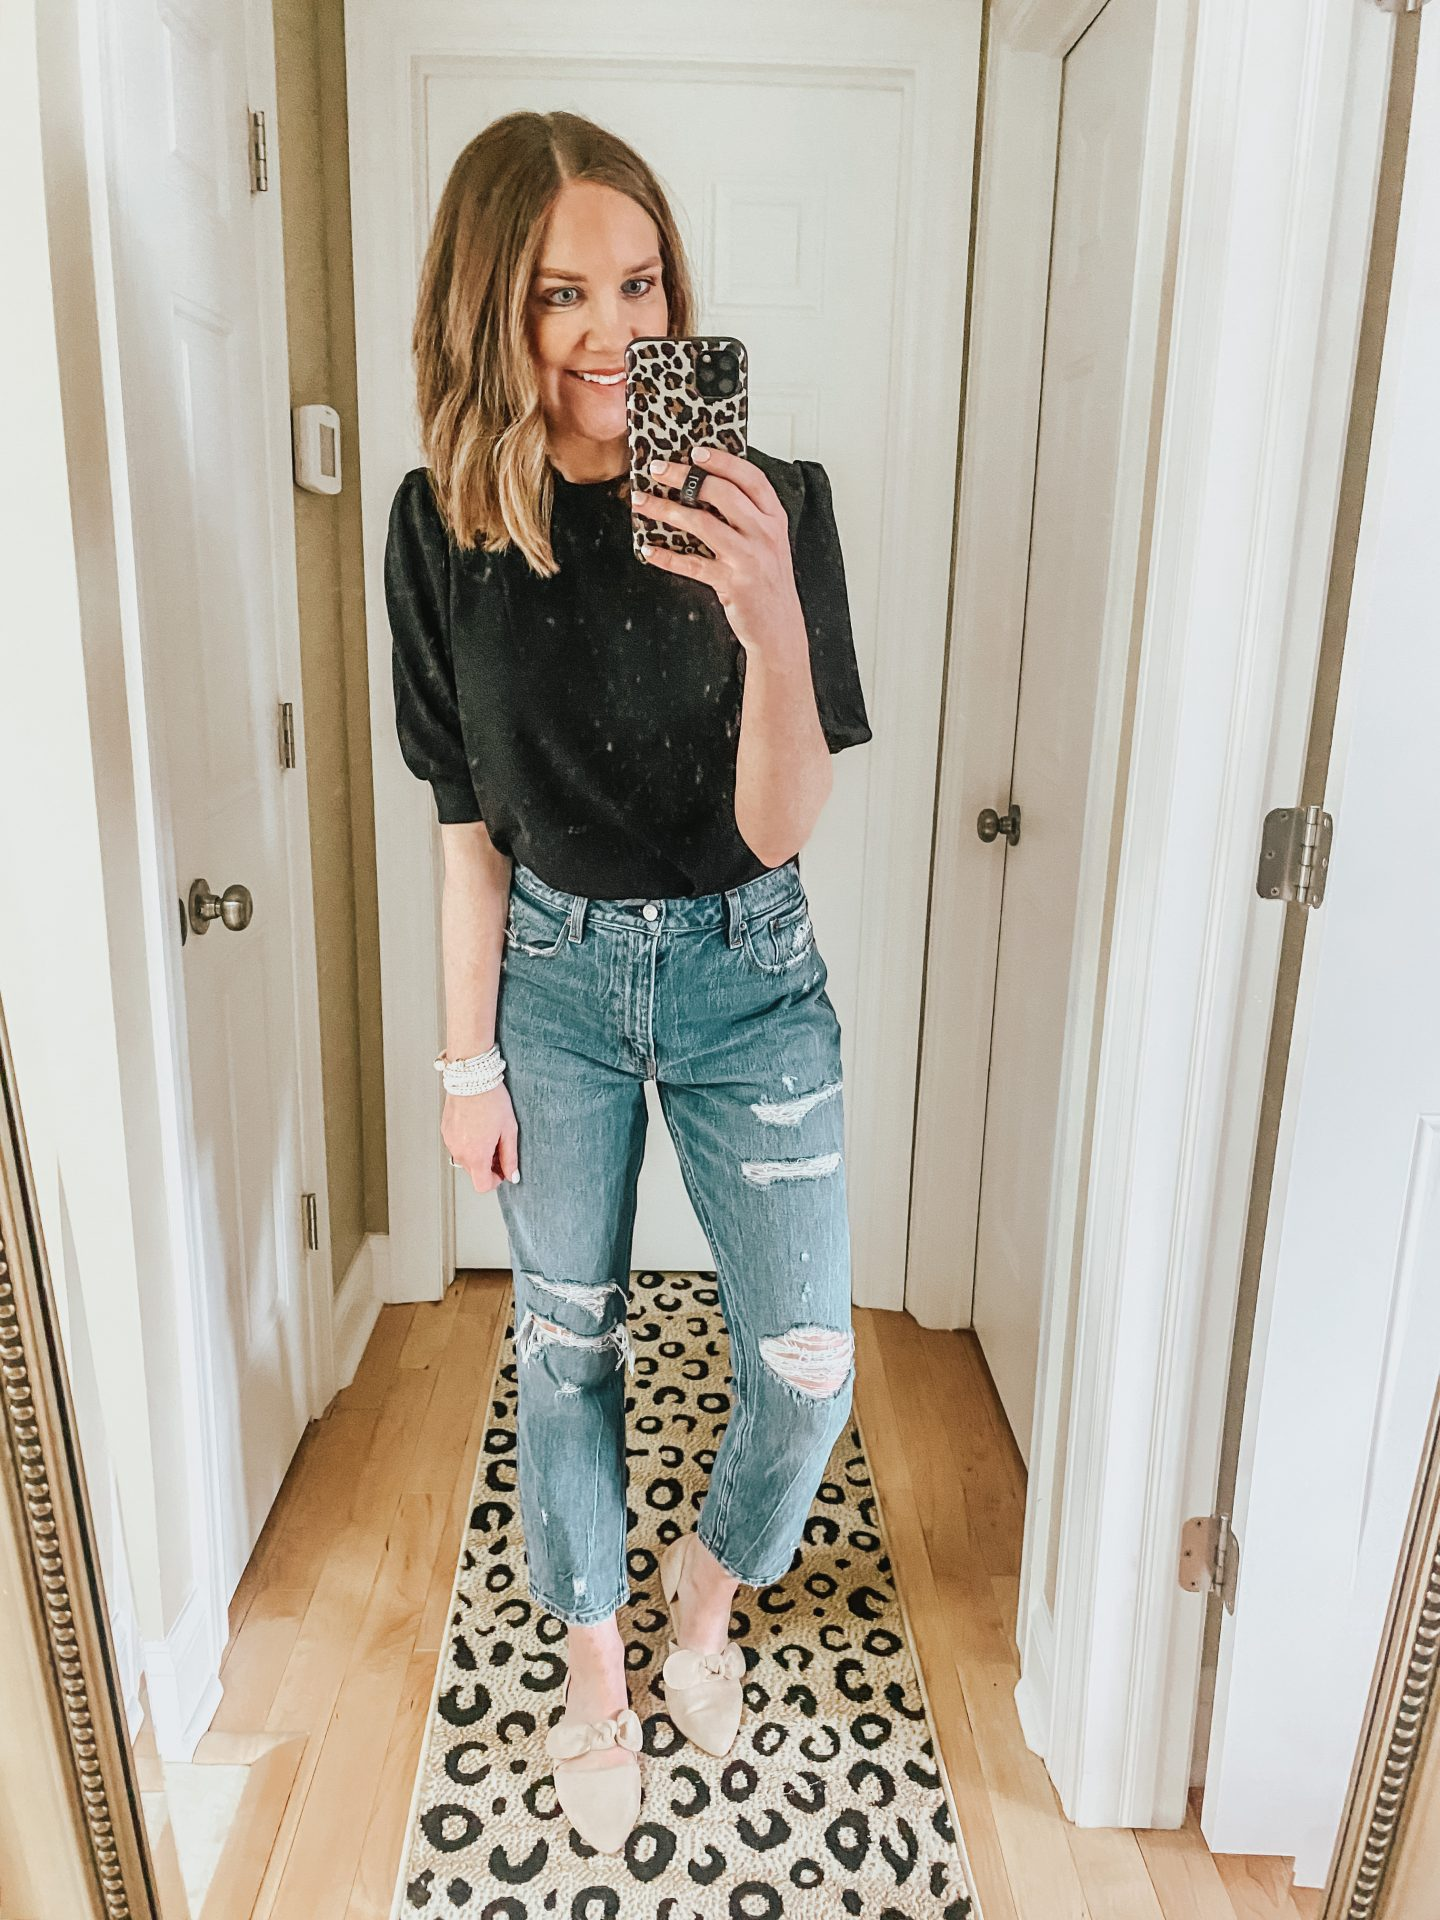 5-ways-to-style-mom-jeans-casual-to-dressy-dressy-outfit